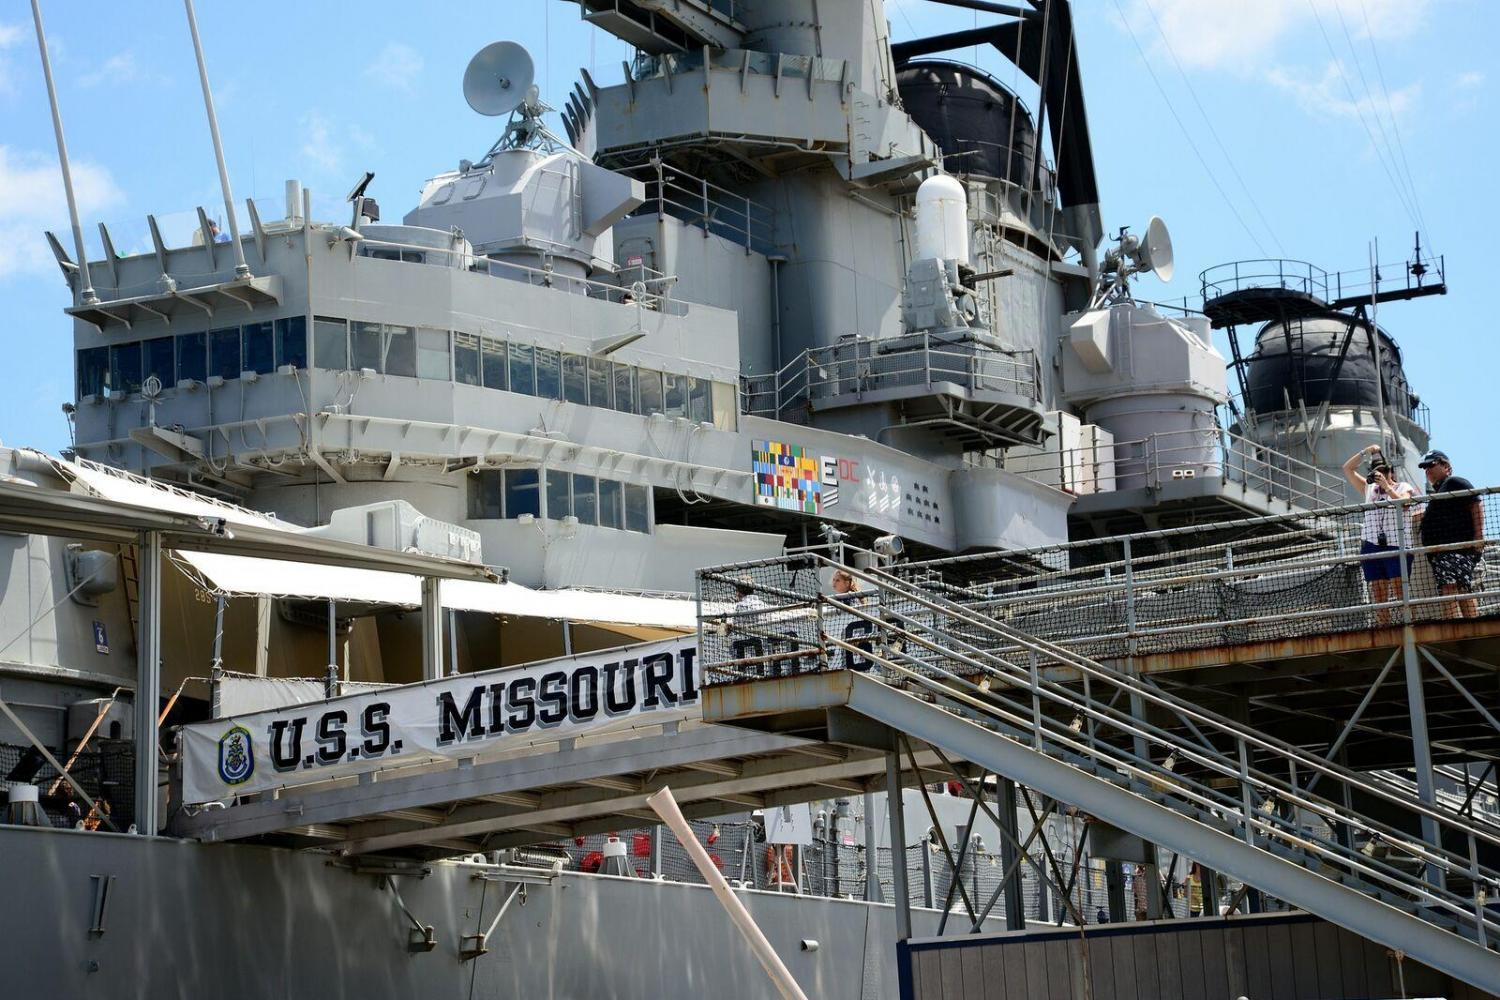 Visit an important piece of US history, the USS Missouri